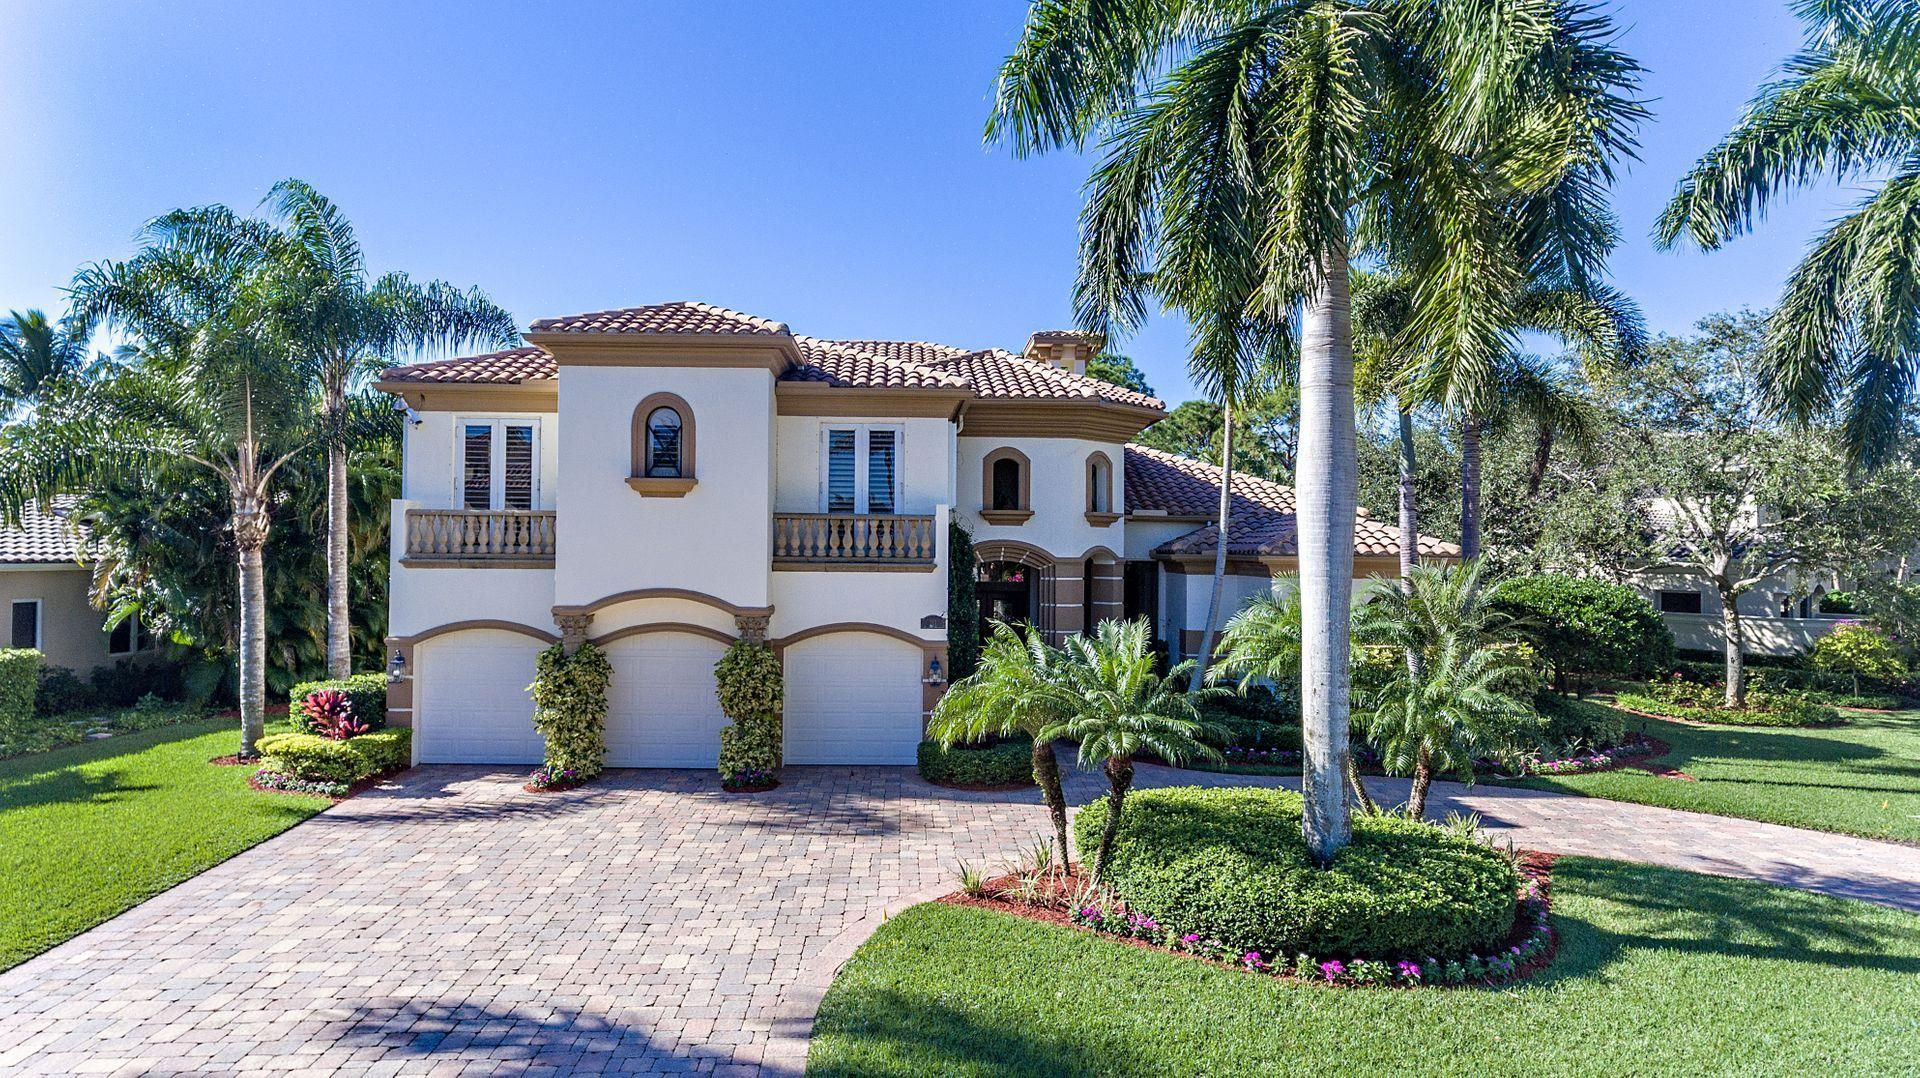 111 Remo Place, Palm Beach Gardens, Florida 33418, 5 Bedrooms Bedrooms, ,5.1 BathroomsBathrooms,A,Single family,Remo,RX-10491523